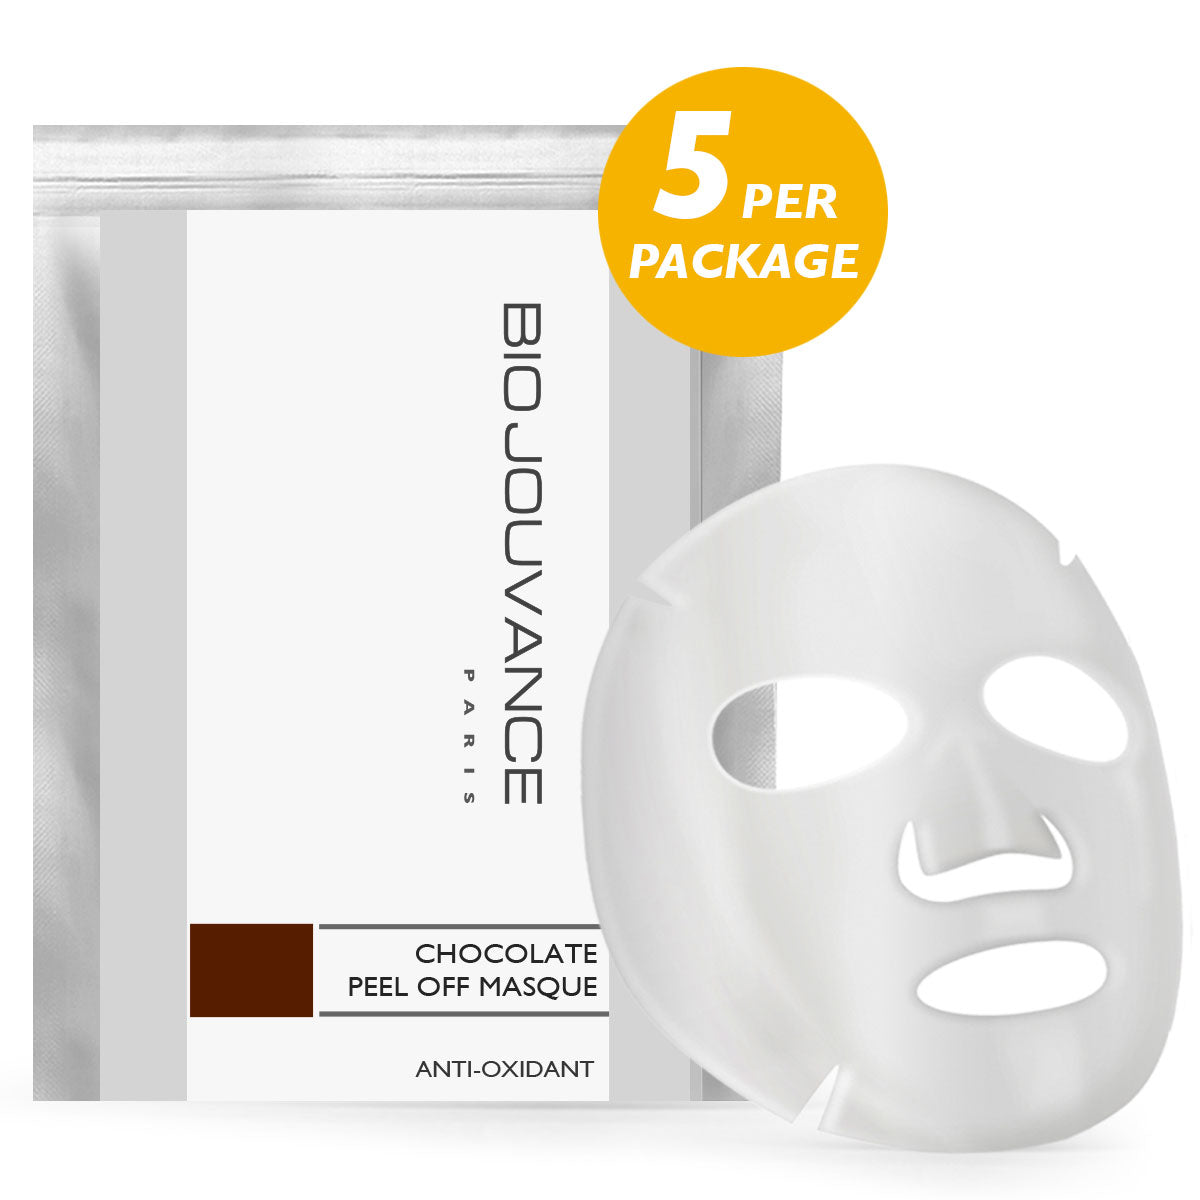 Antioxidant Chocolate Peel Off Masque